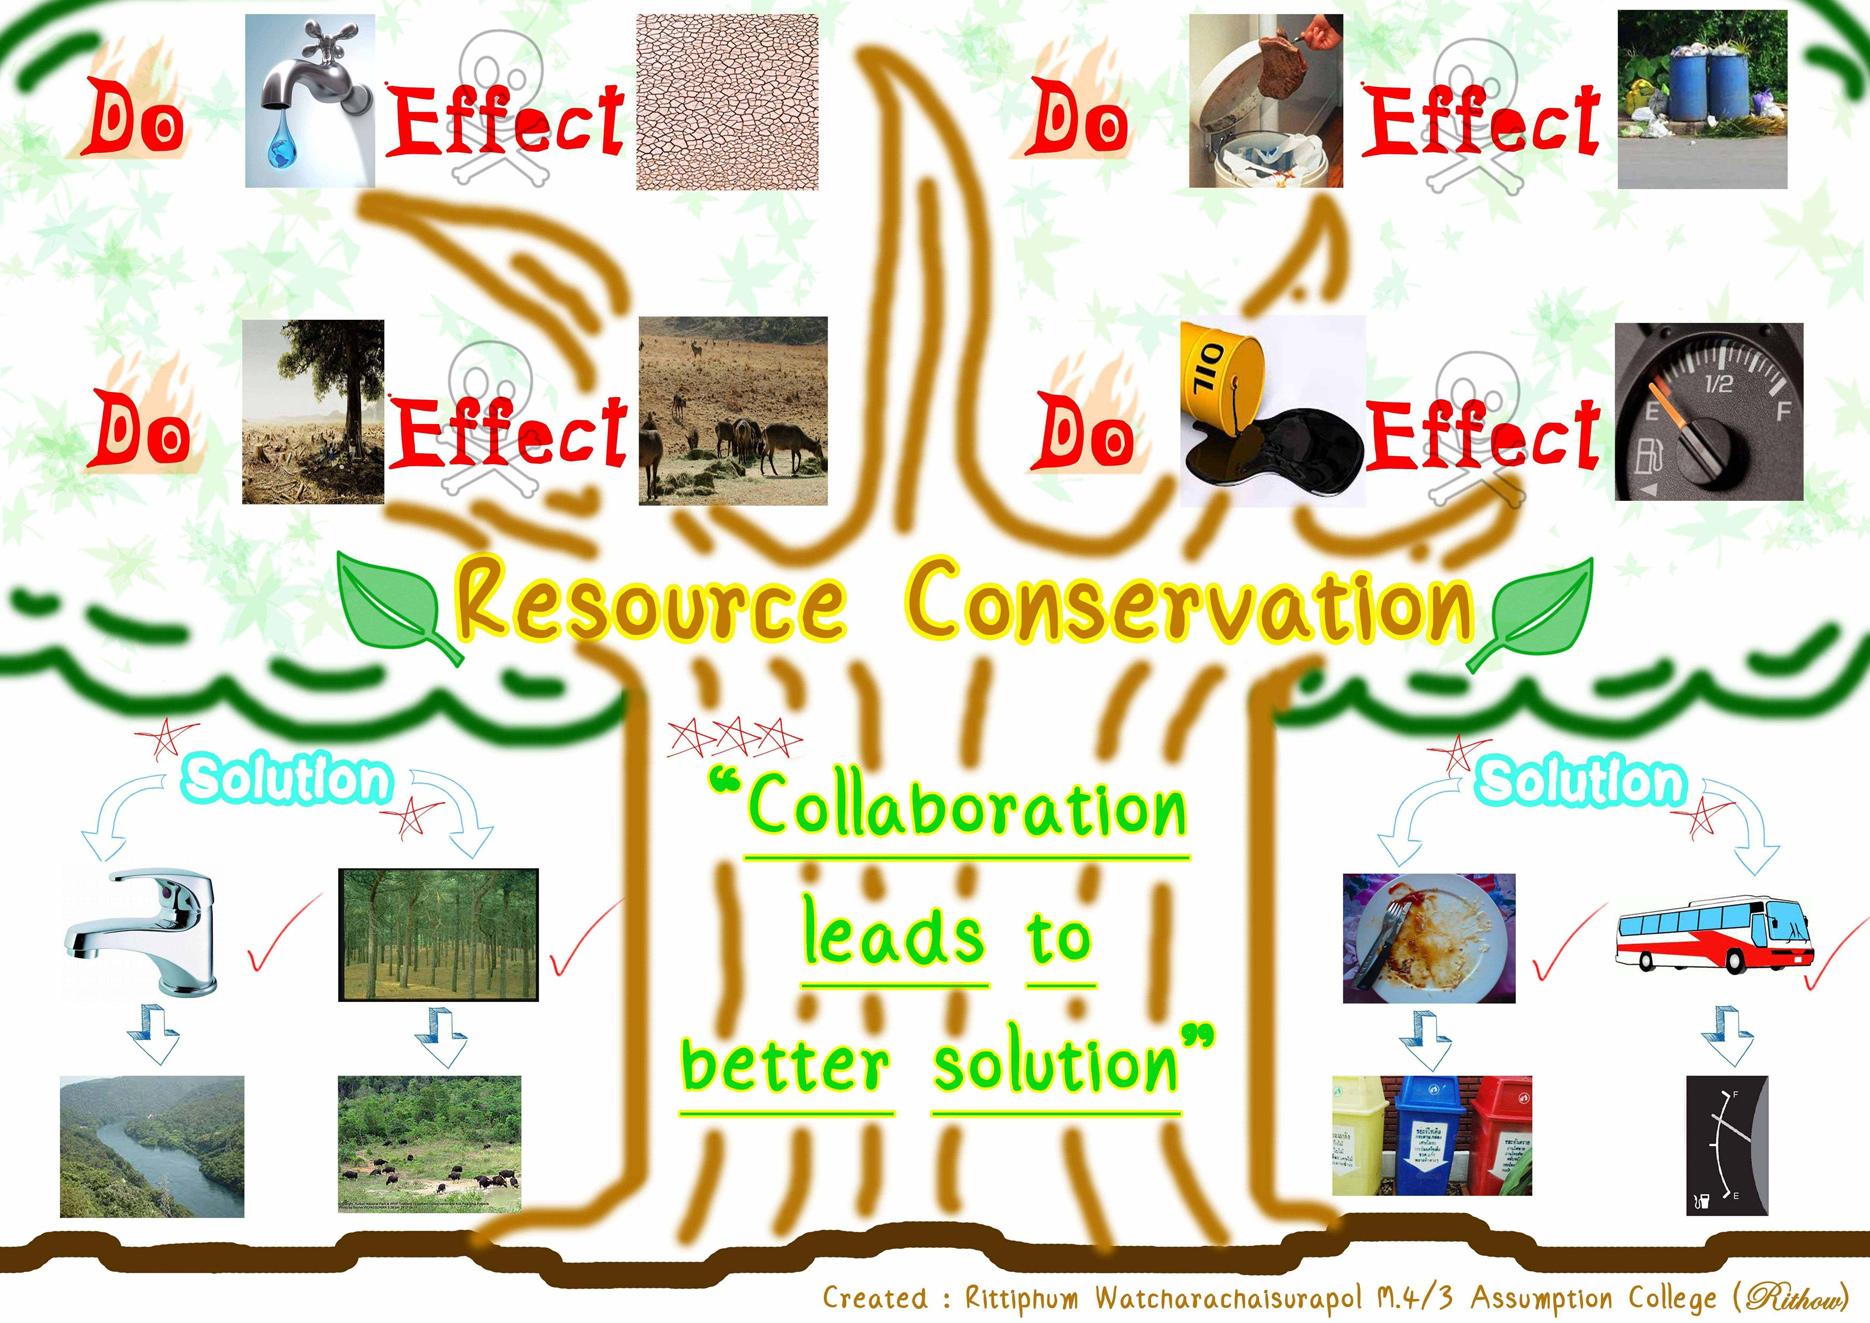 essay on conserve energy today for a better tomorrow